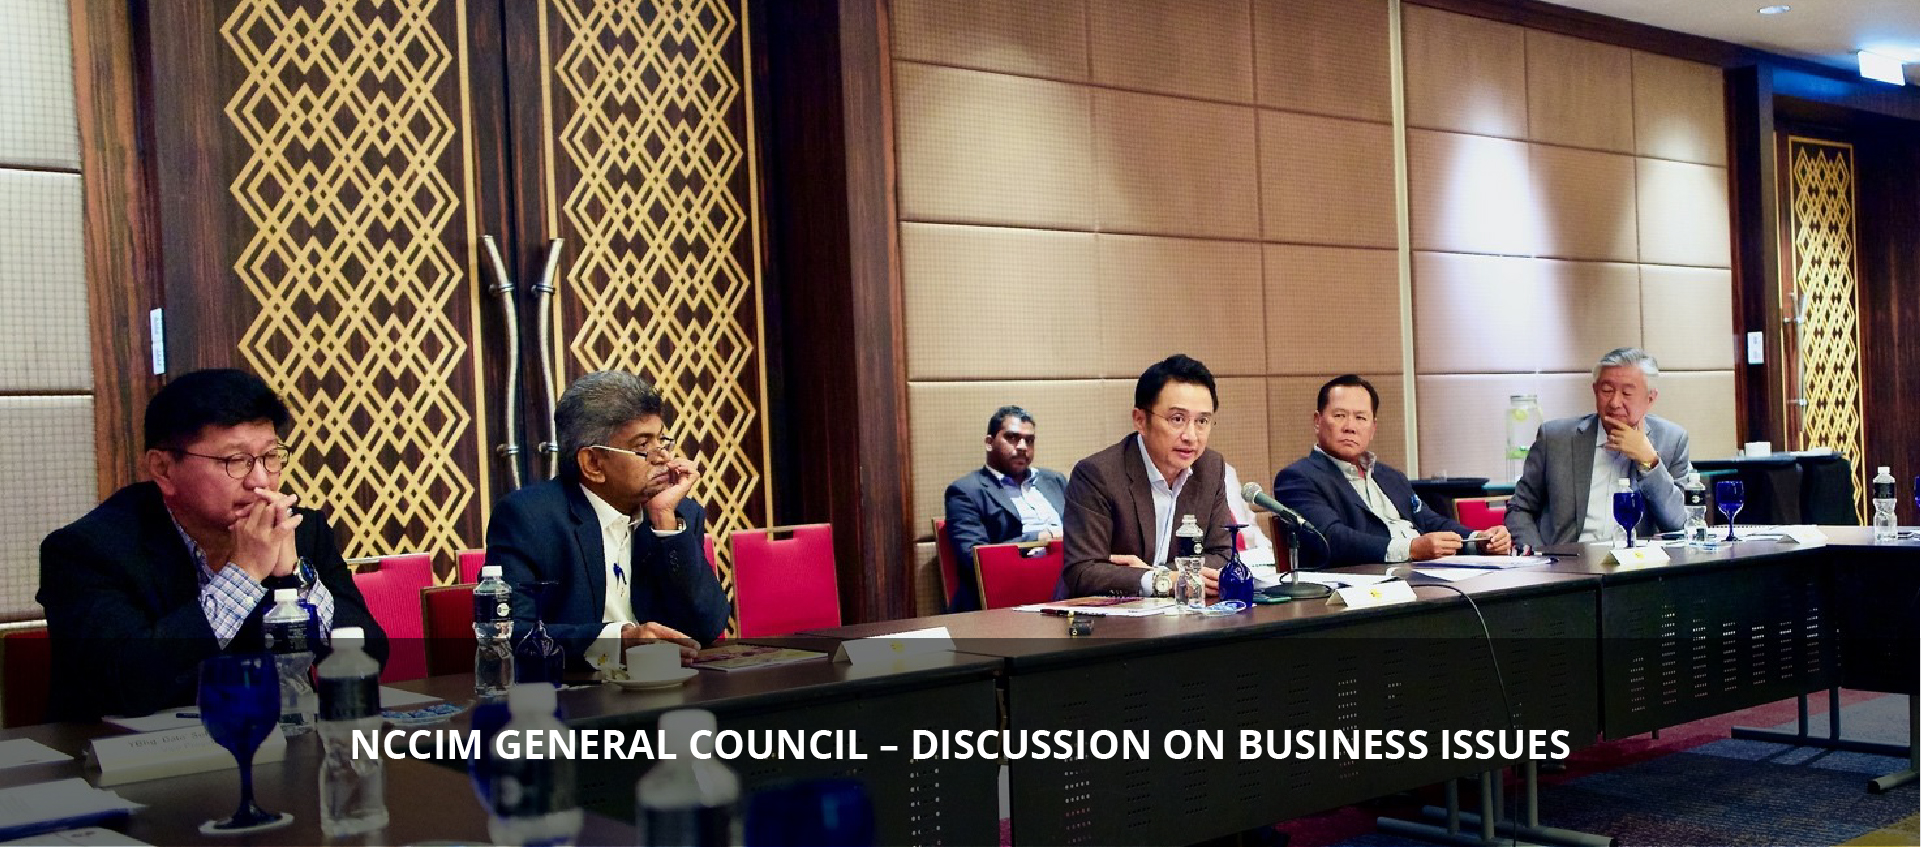 NCCIM GENERAL COUNCIL – DISCUSSION ON BUSINESS ISSUES